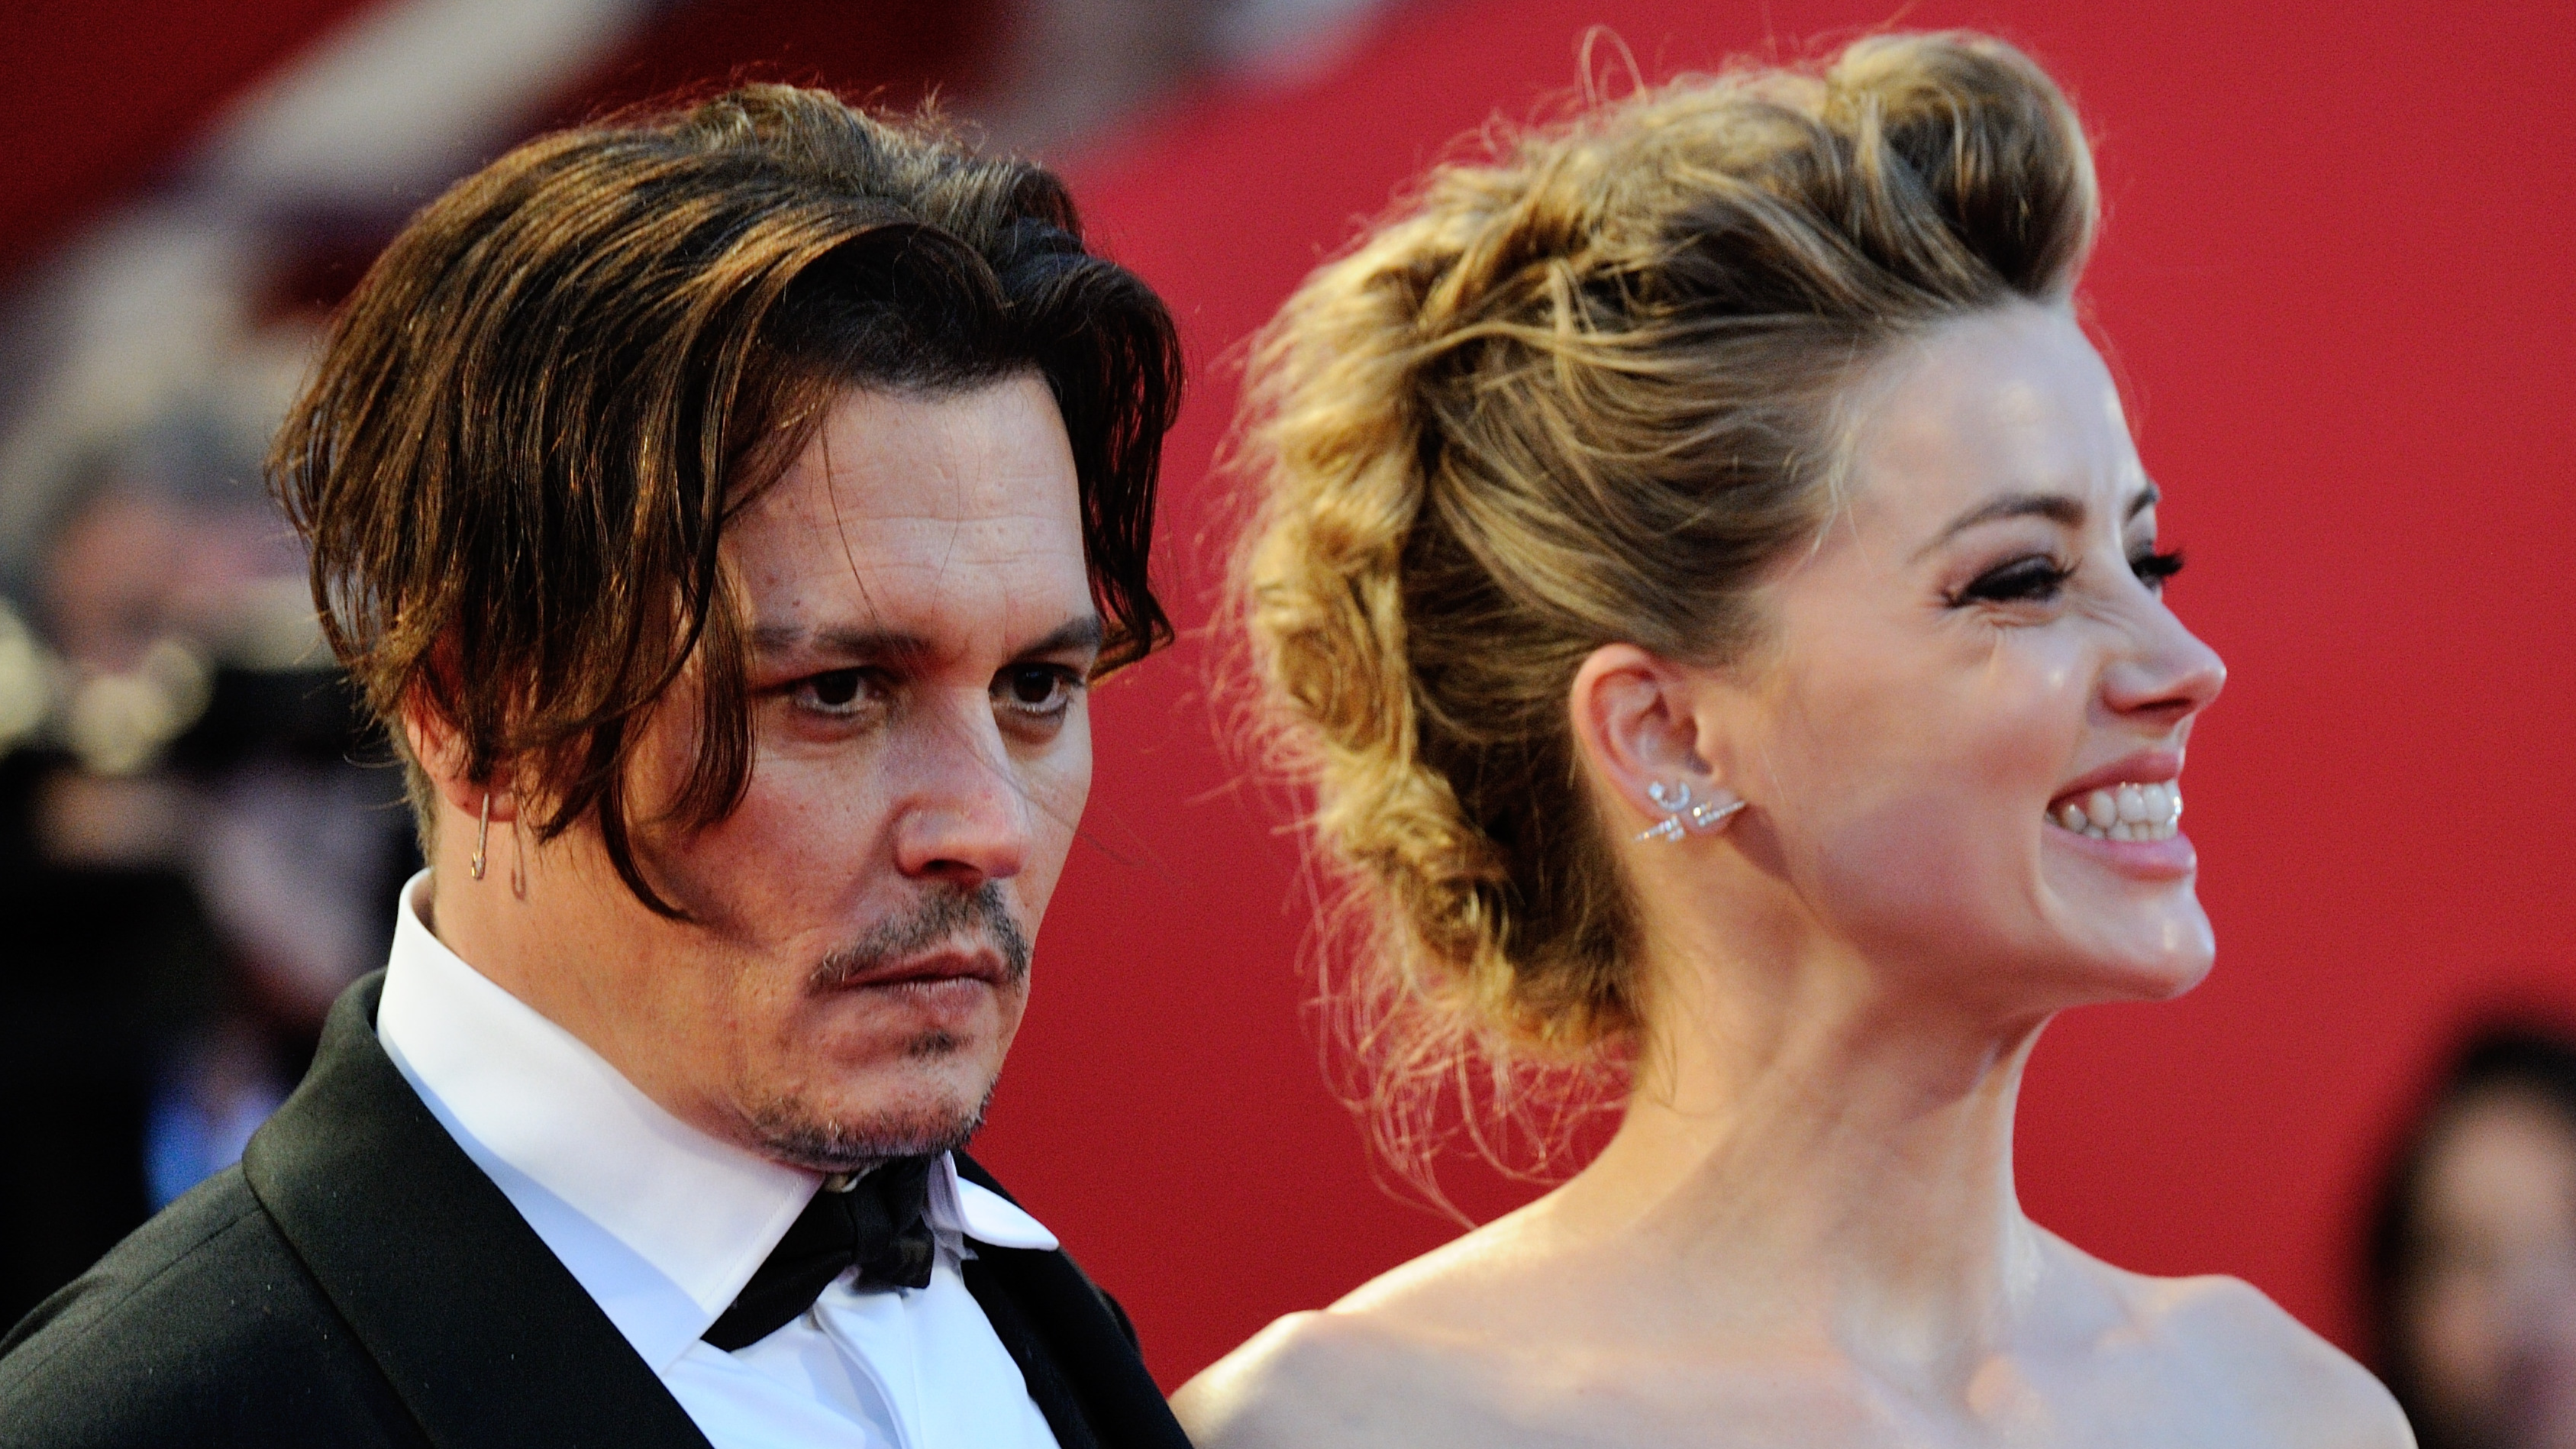 Johnny Depp Reportedly Claiming That Amber Heard 'Left Poo In Their Bed'